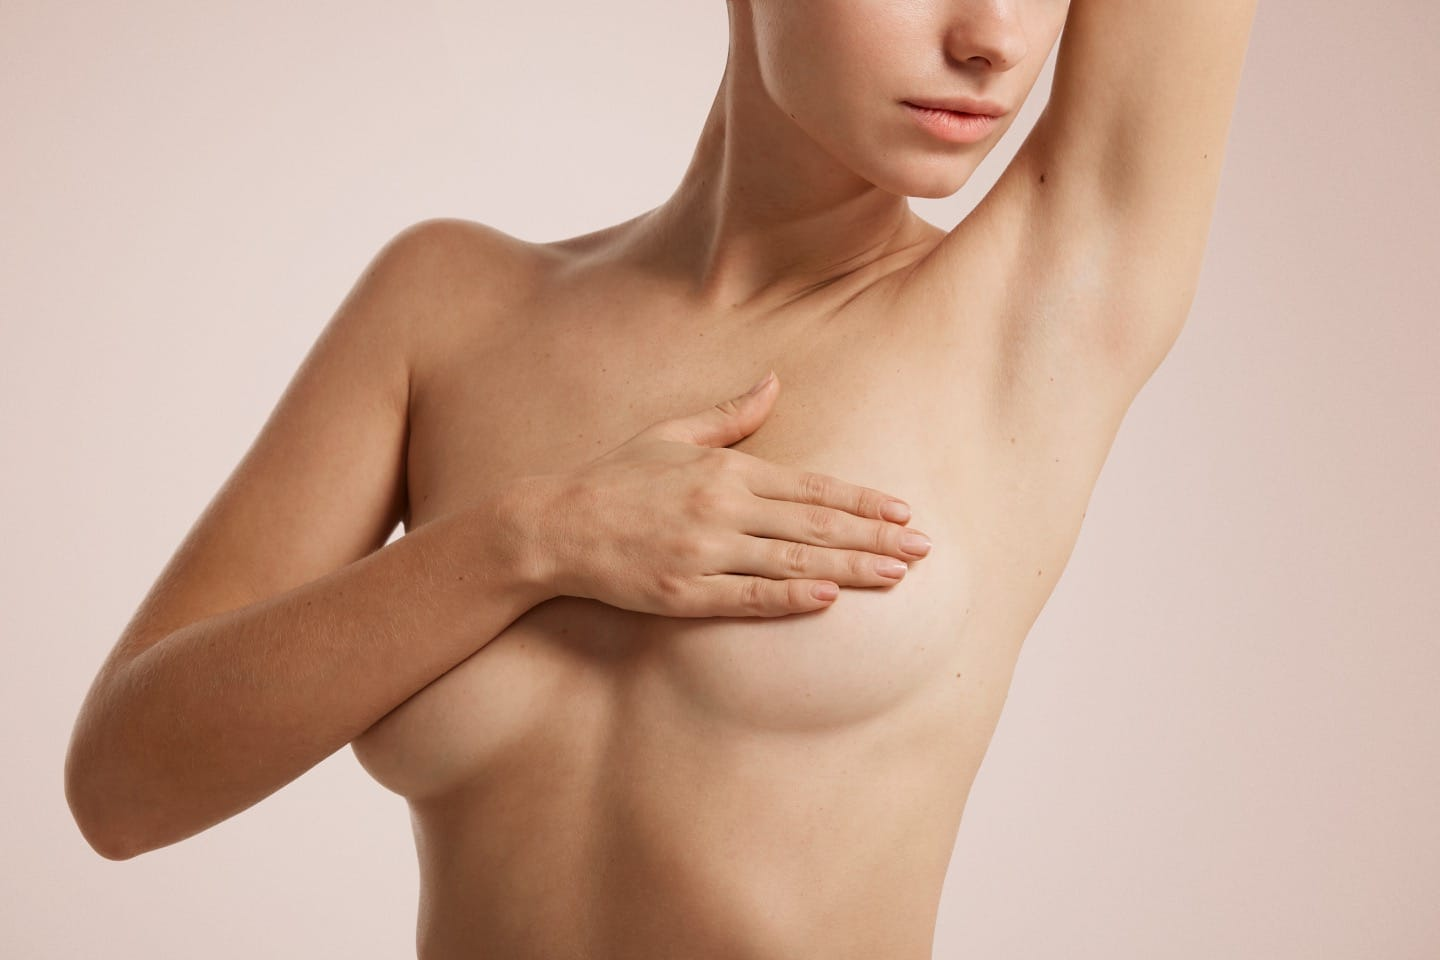 Consider, that unusual breast cancer pictures